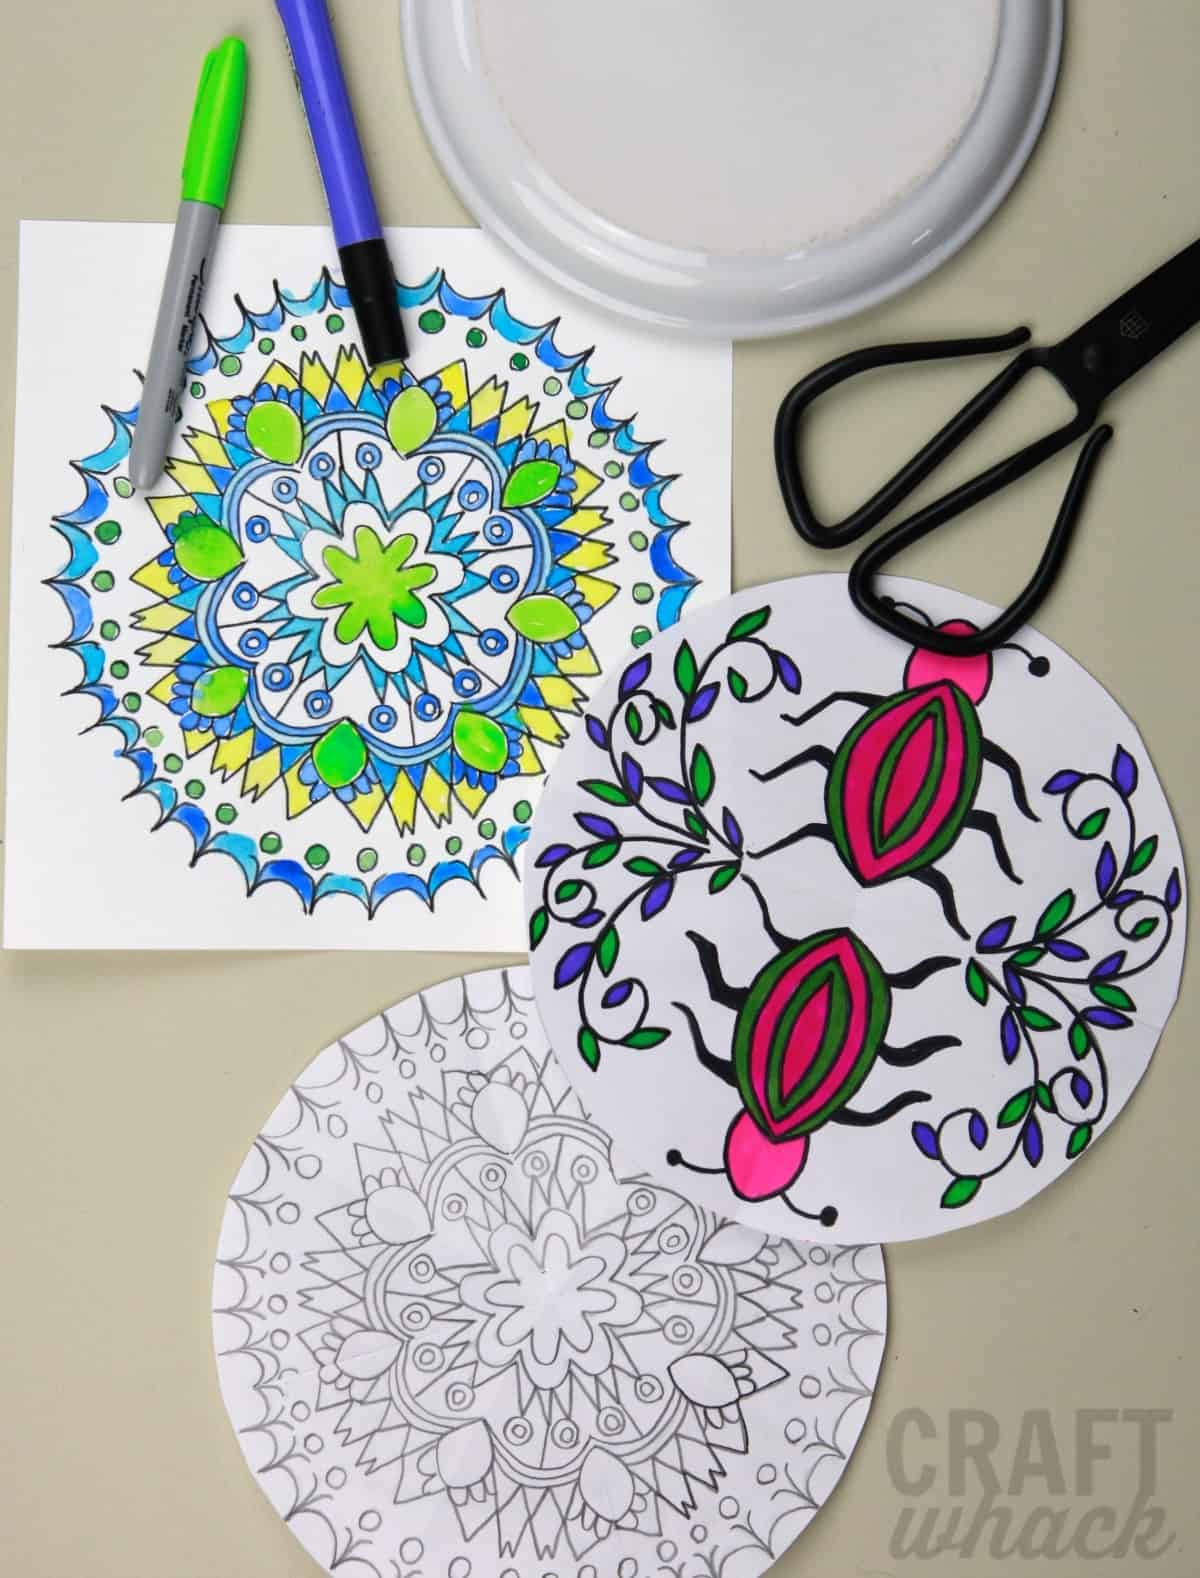 drawn mandalas and supplies